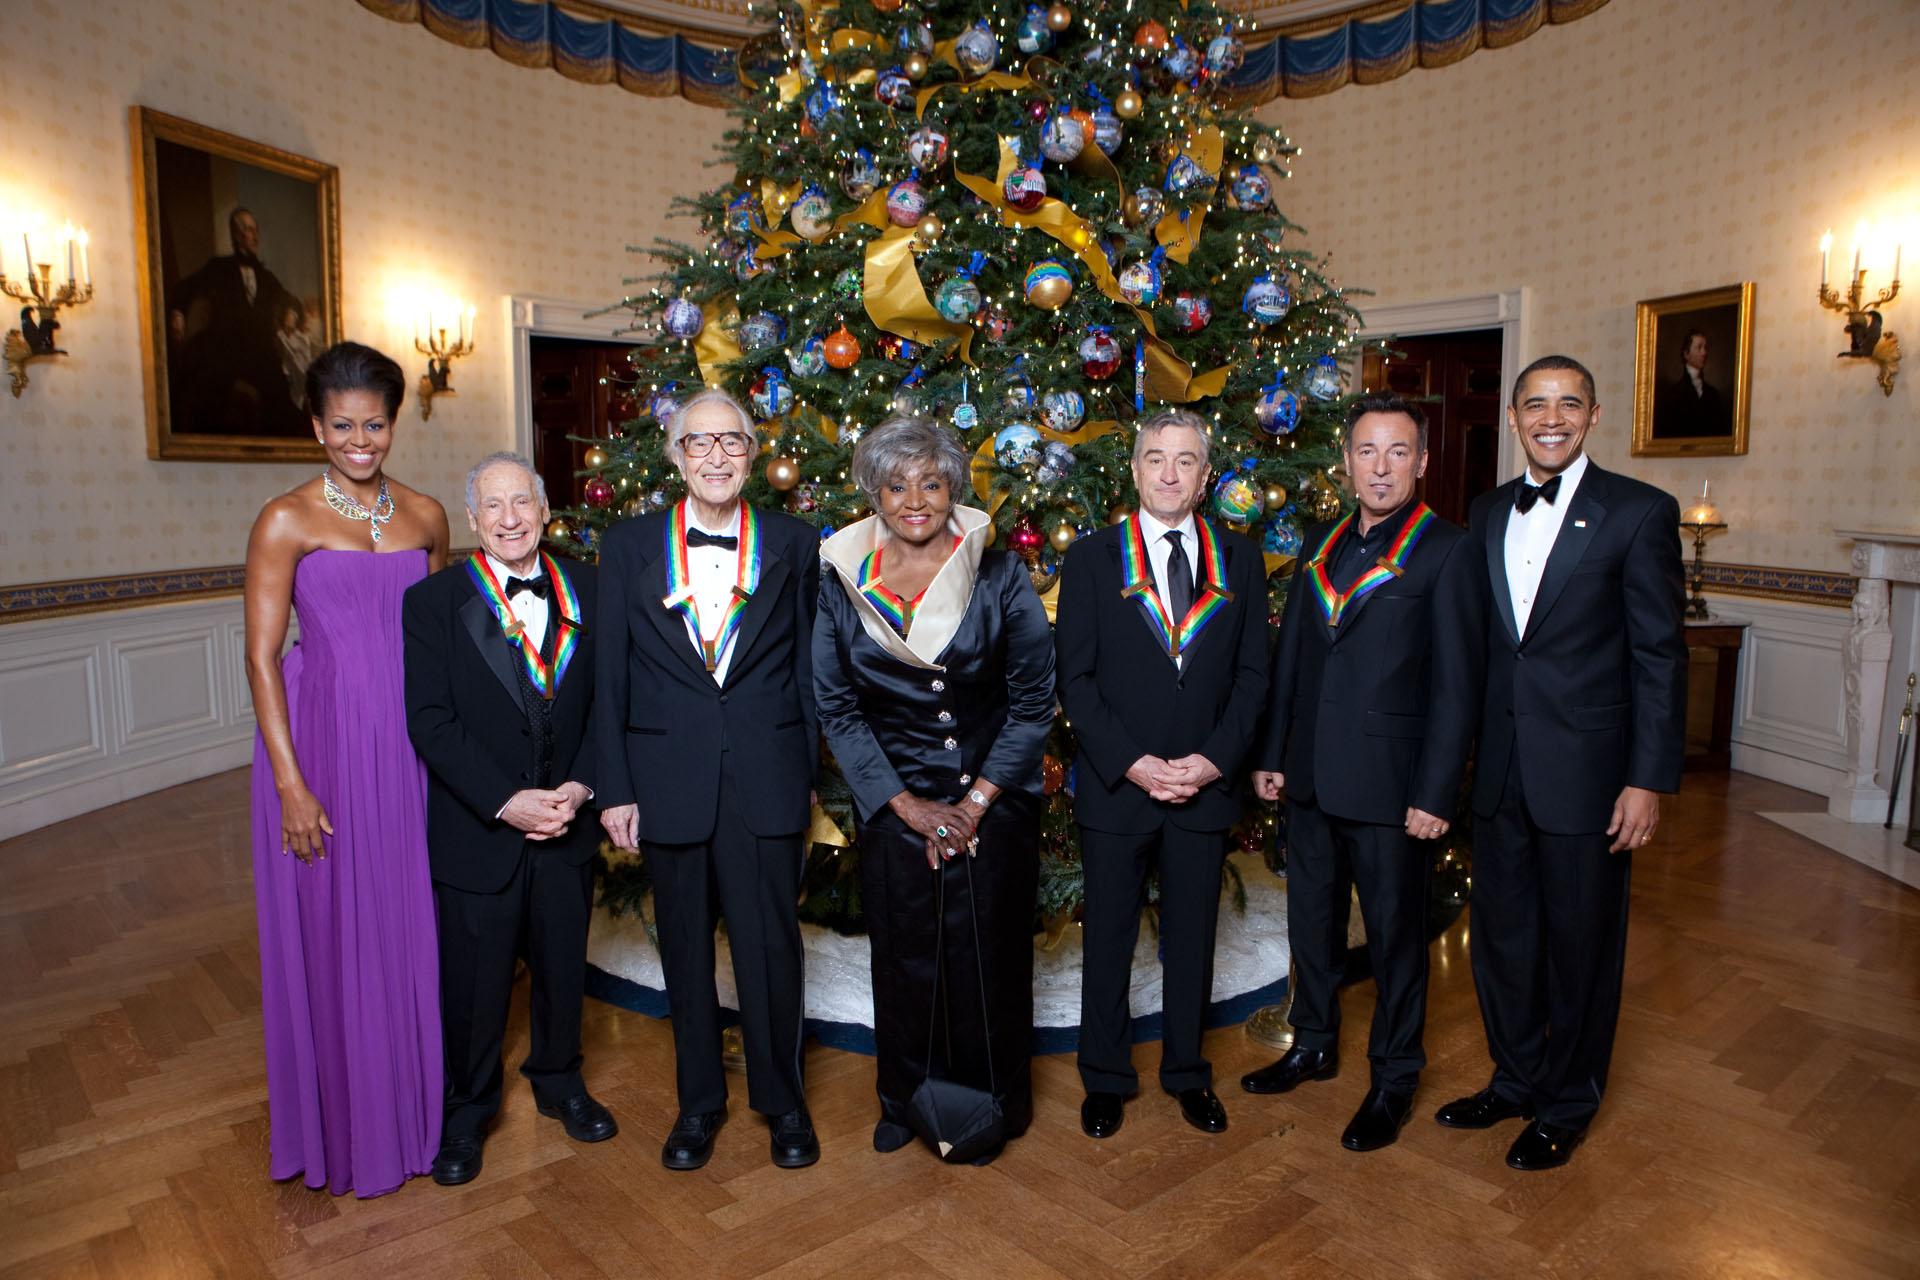 The 2009 Kennedy Center Honorees